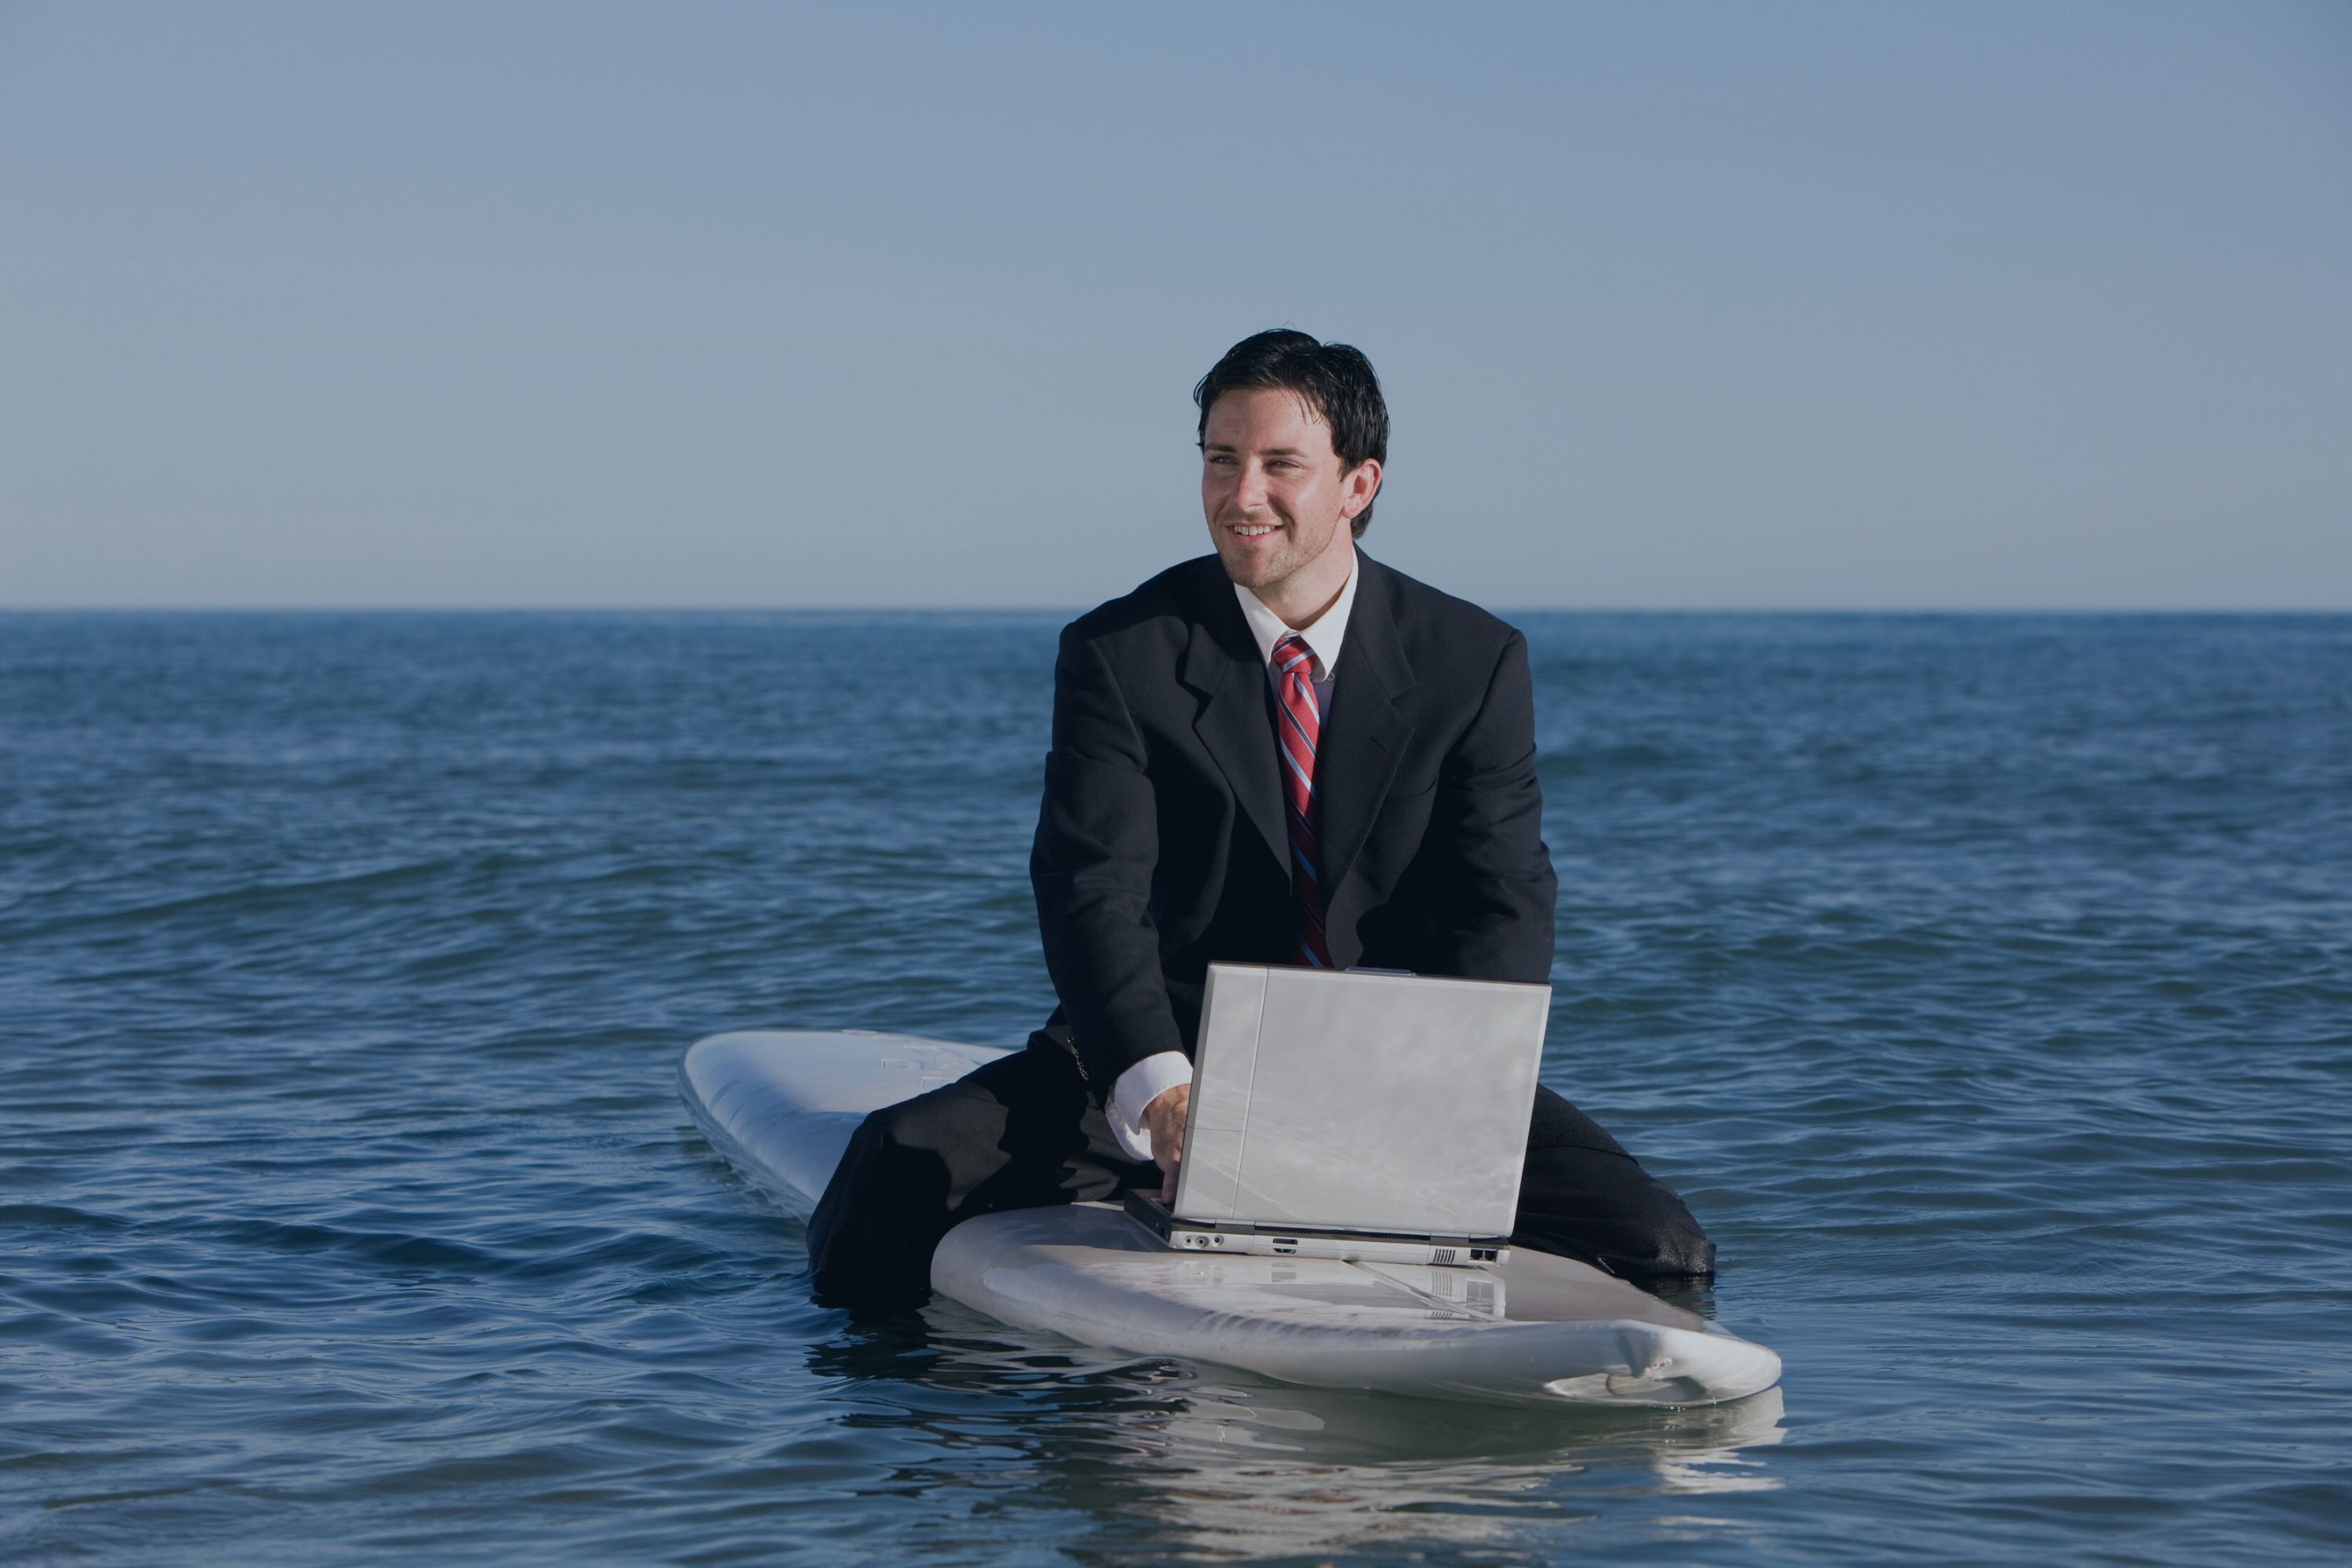 Business_man_sitting_on_a_surfboard_in_the_ocean_smiling_and_typing_on_a_laptop_working_vacation